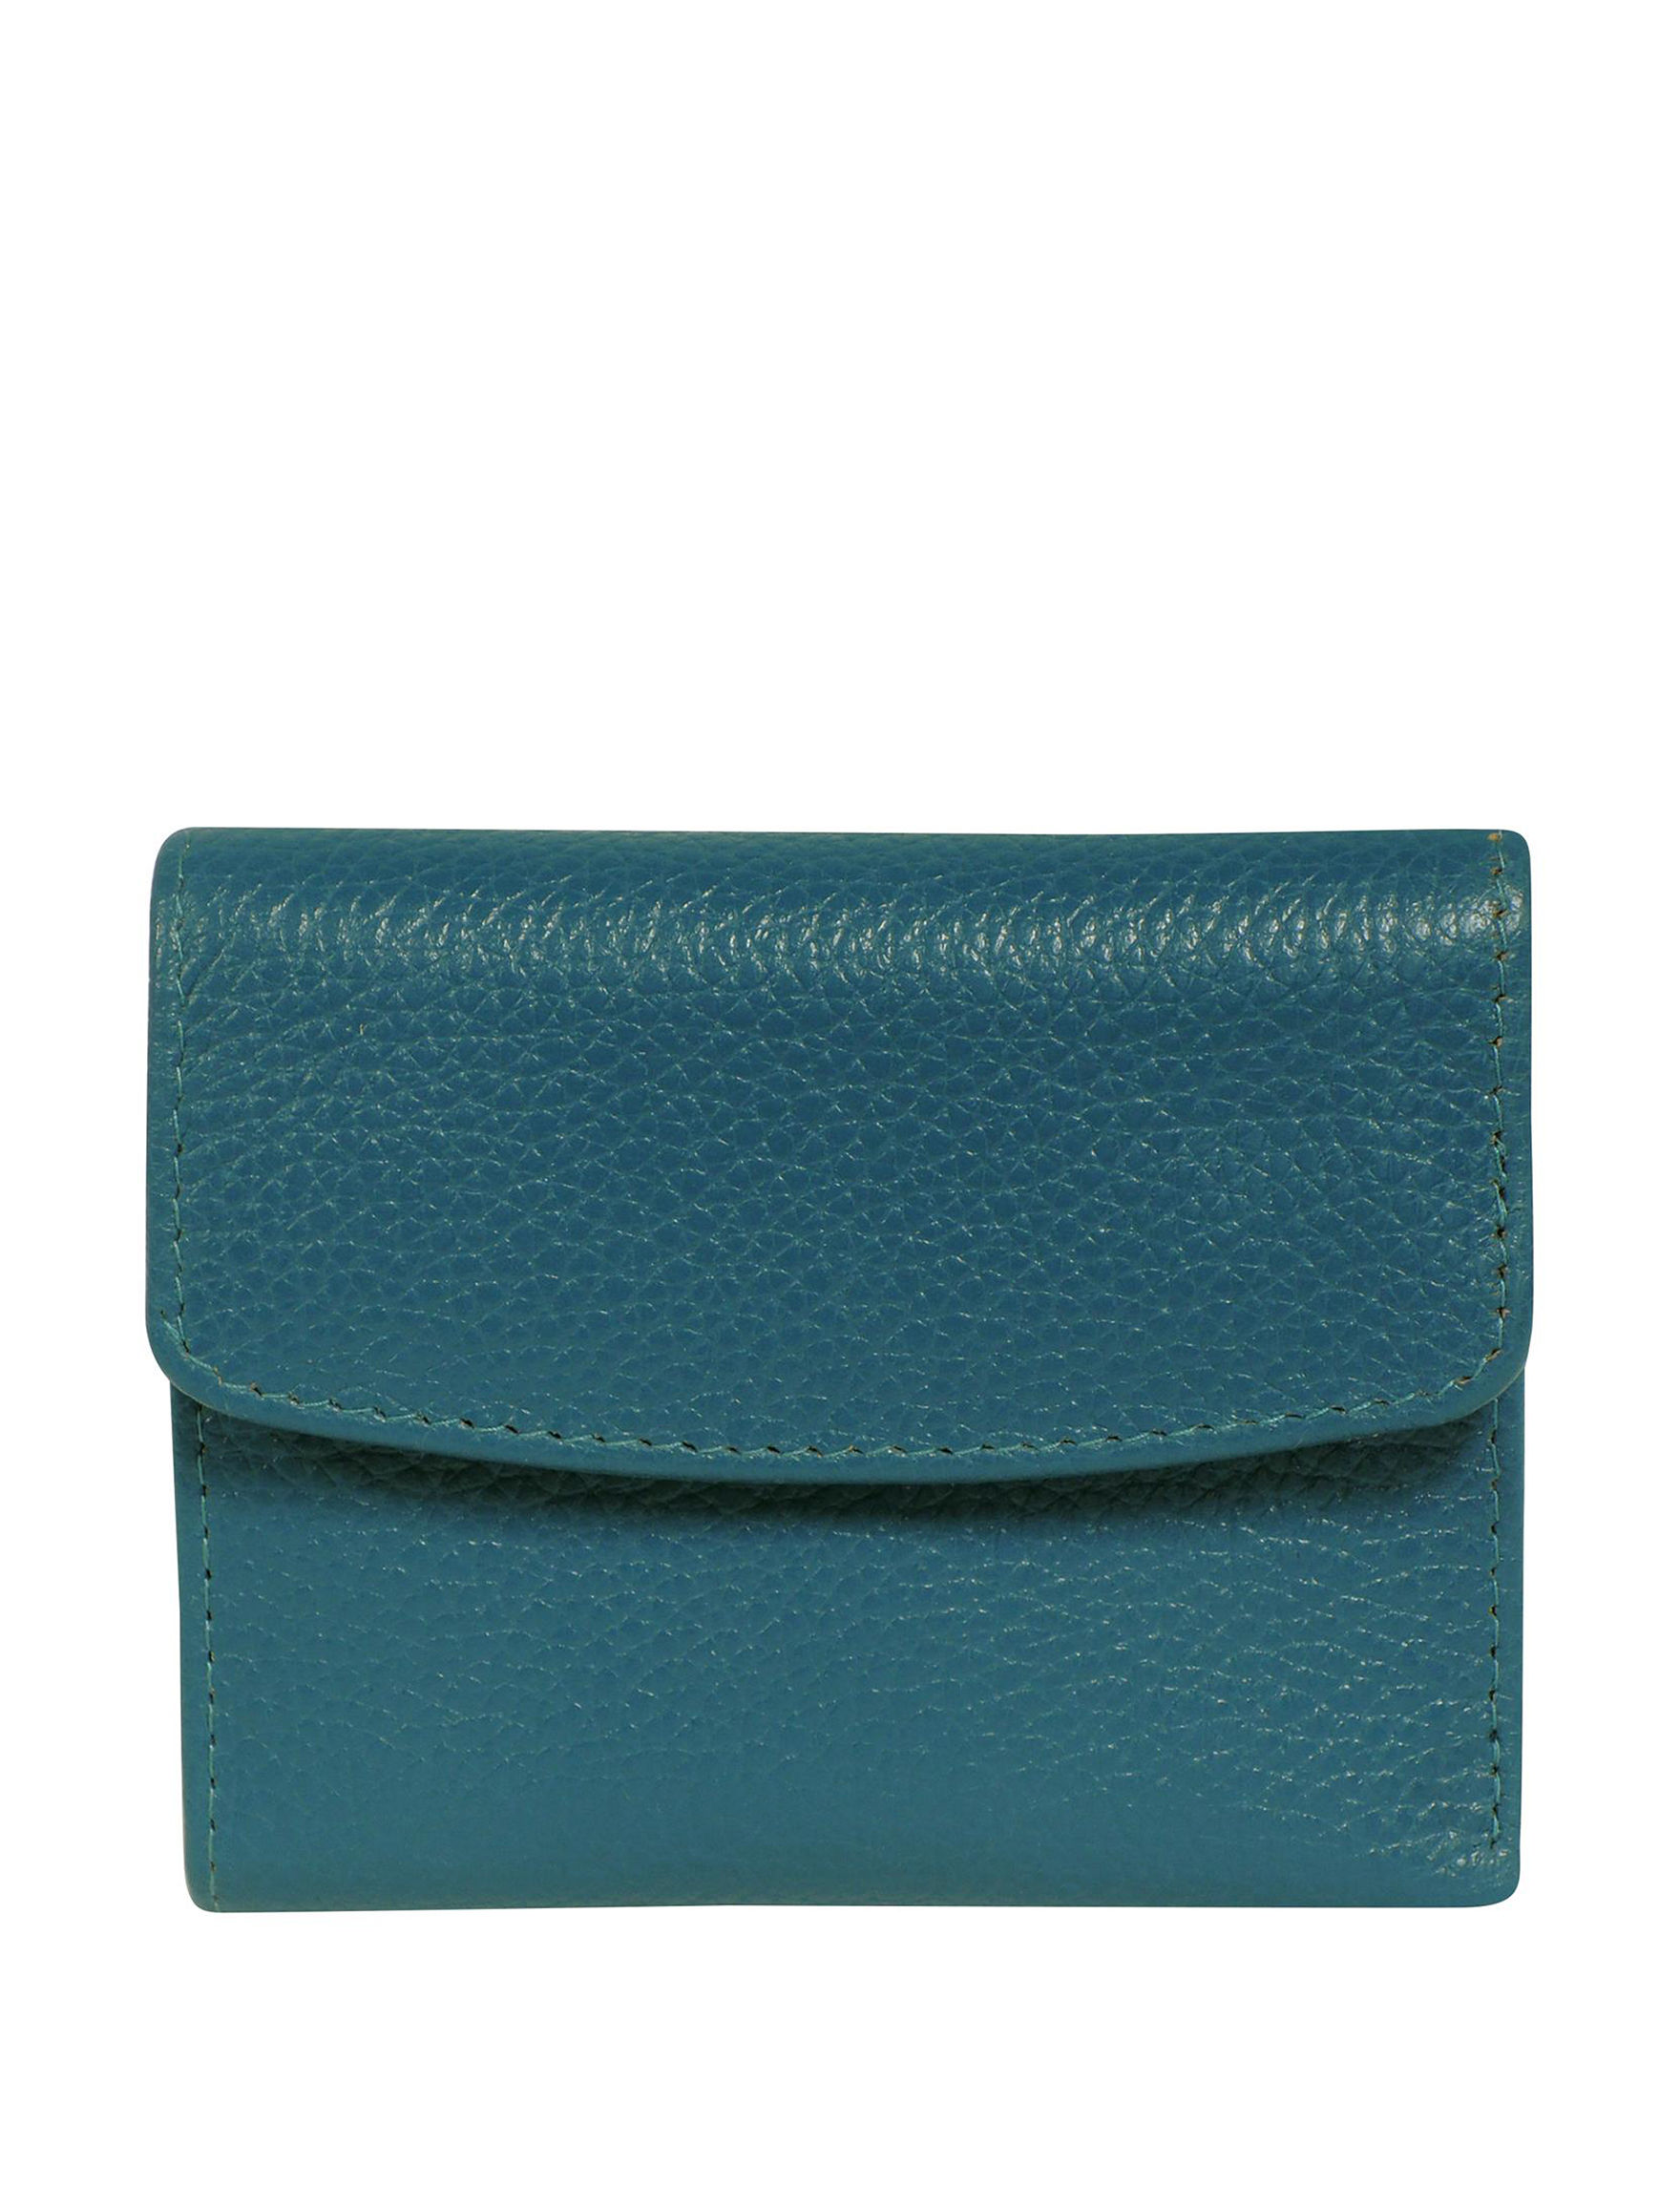 Buxton Teal Wallet